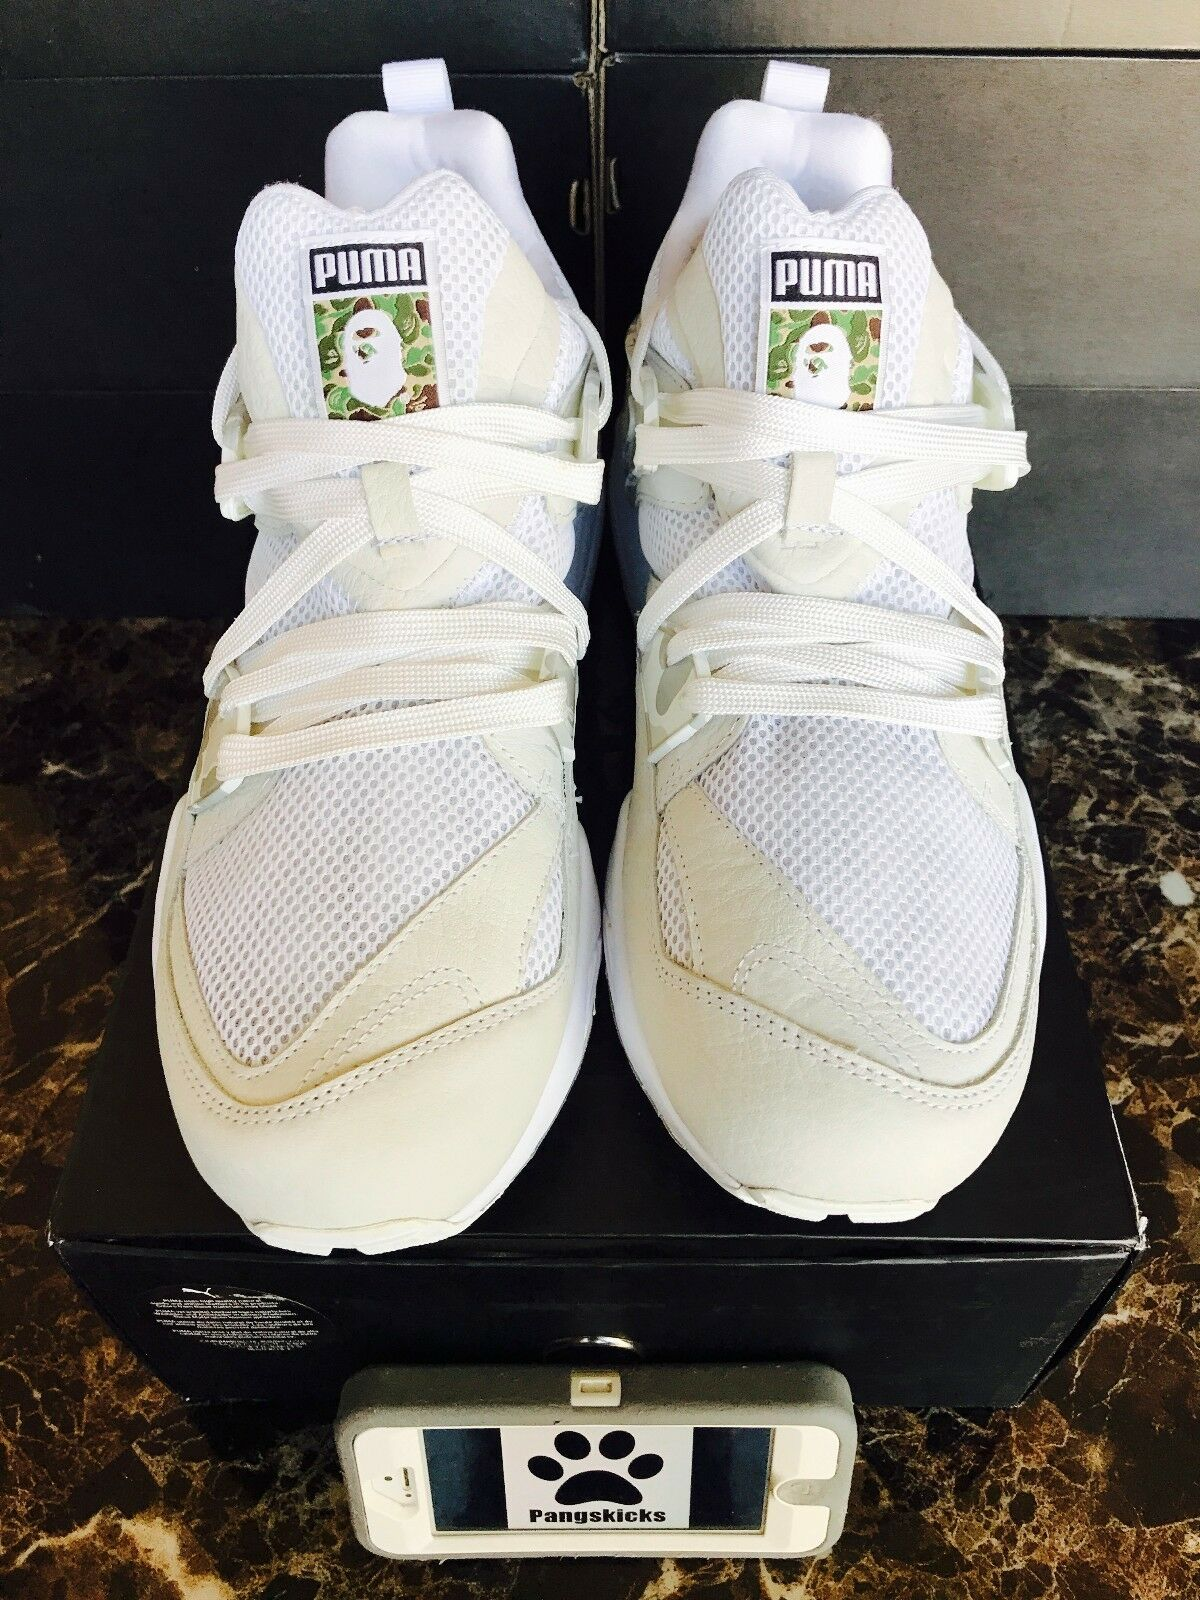 PUMA X Bape Blaze of Glory Sz 11 for sale online  40e2eb4a5